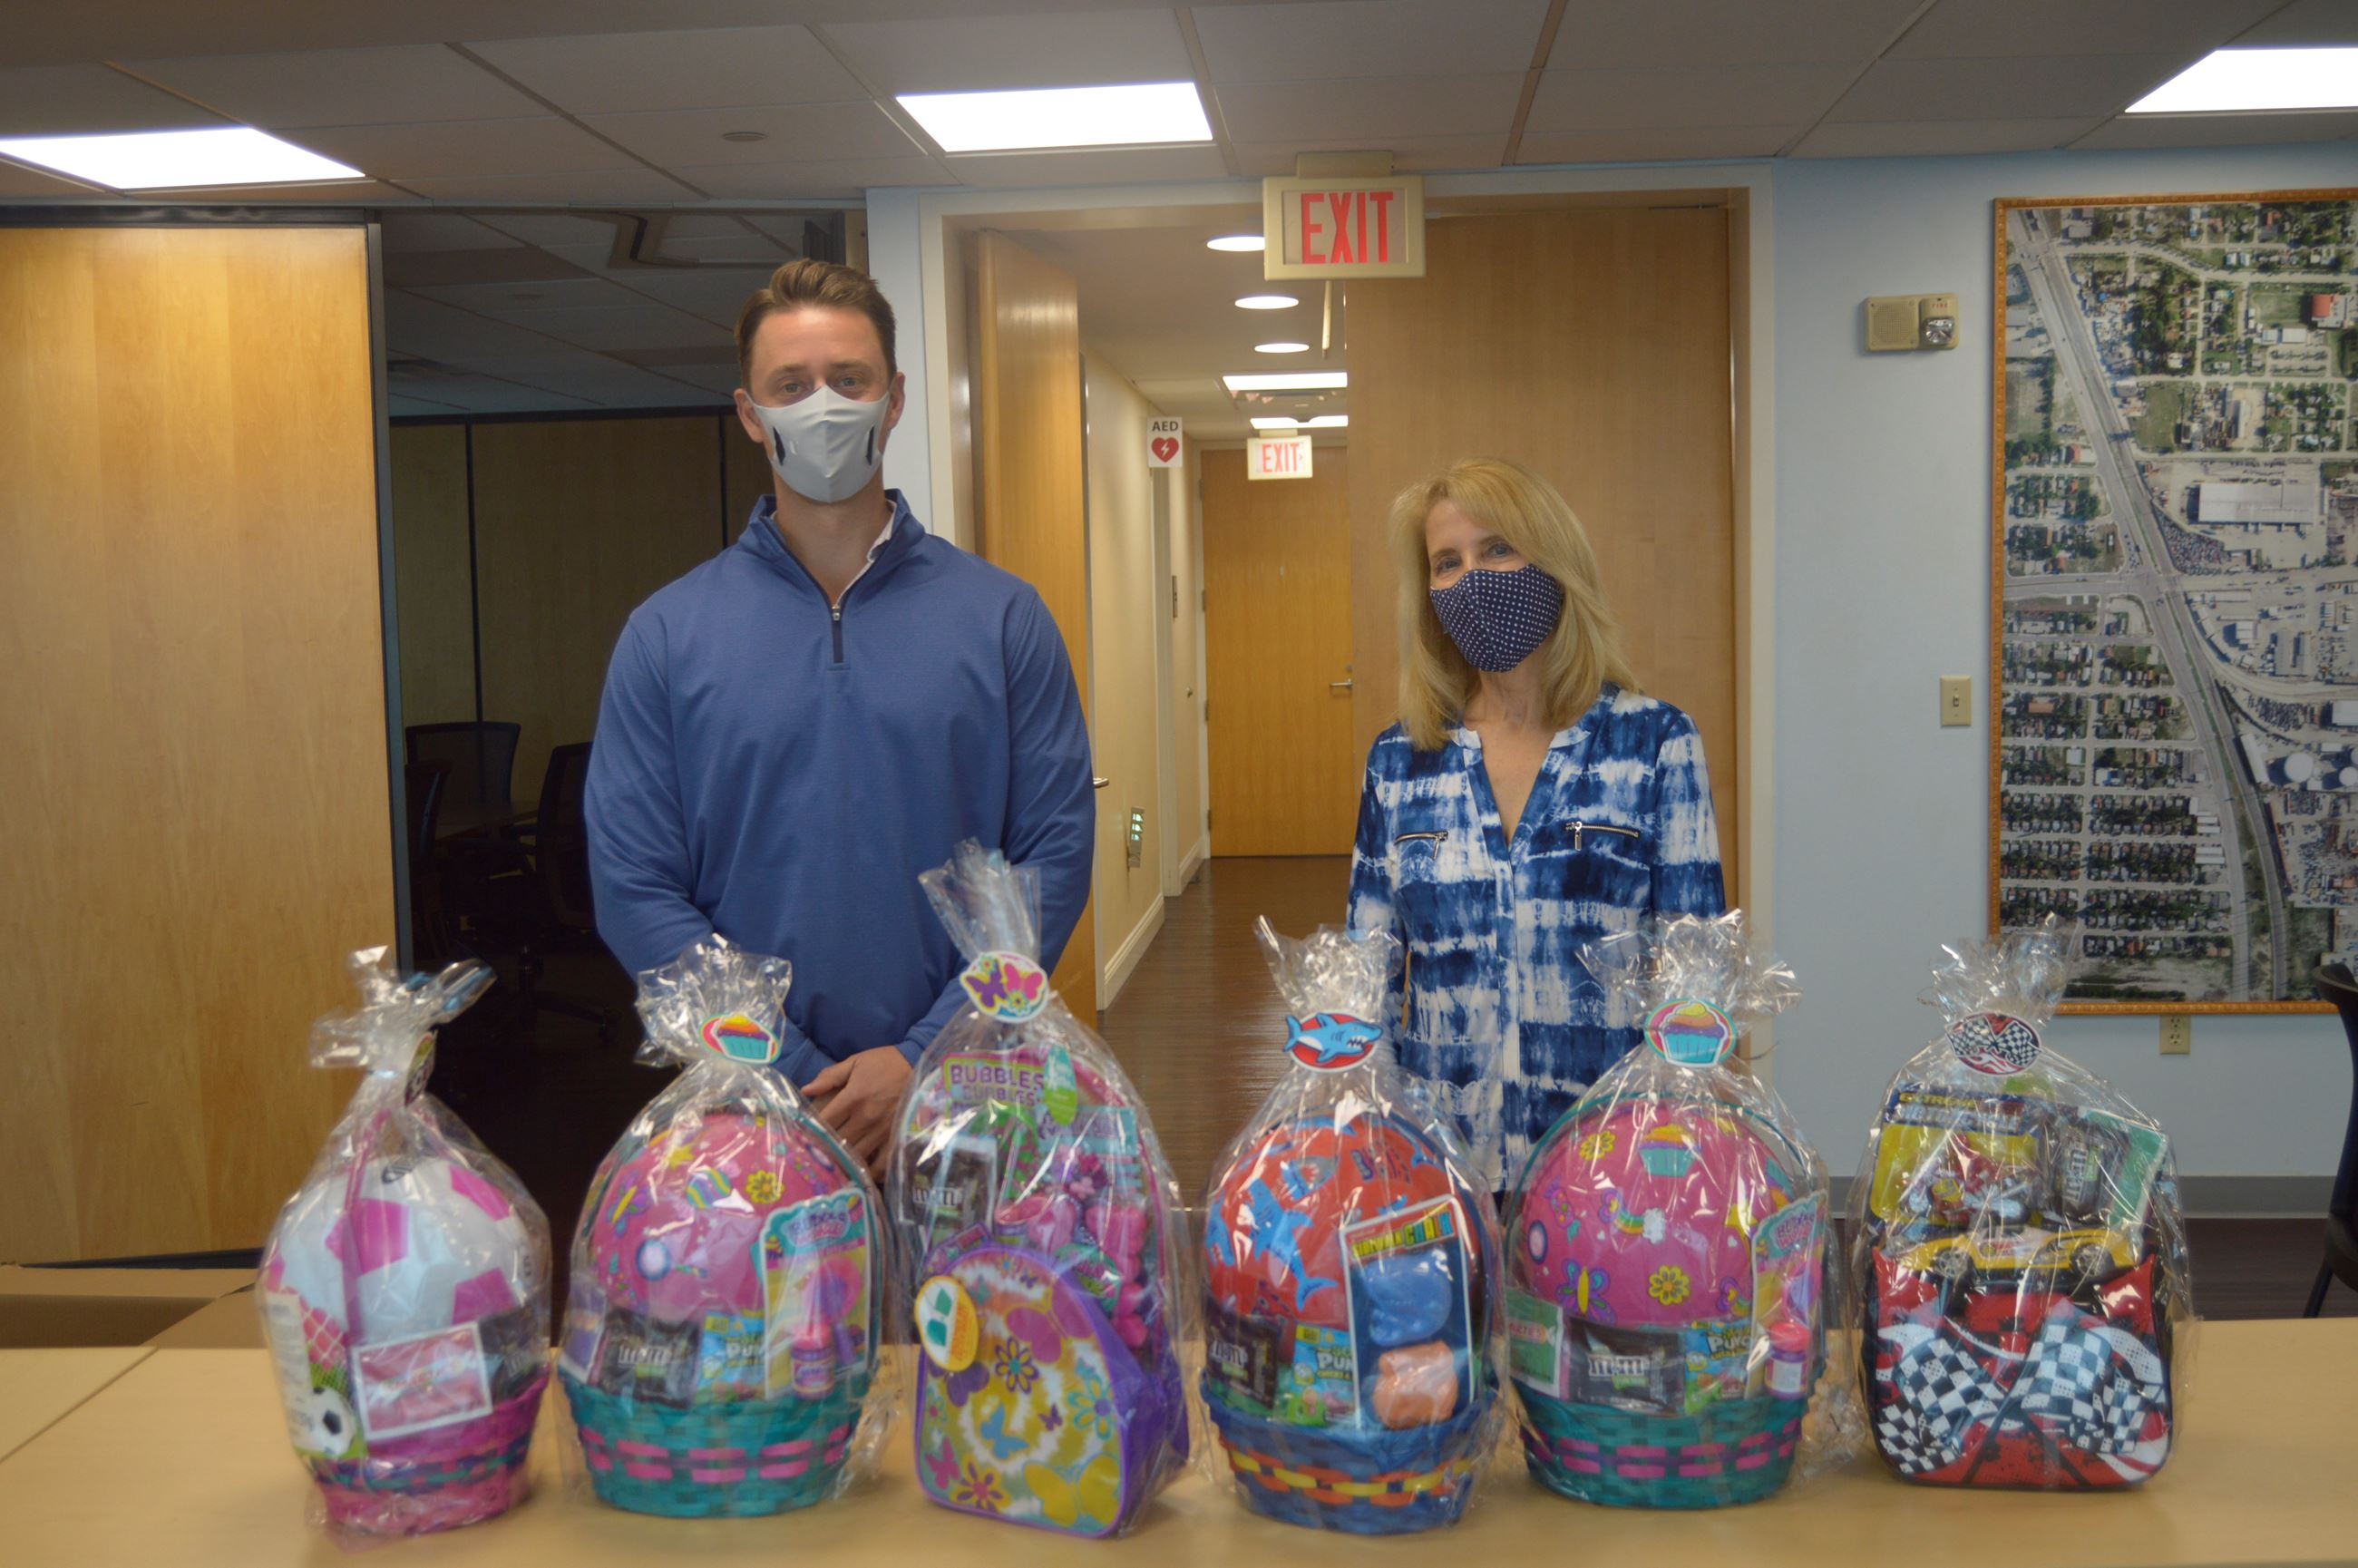 SSI Petroleum staff donating Easter baskets